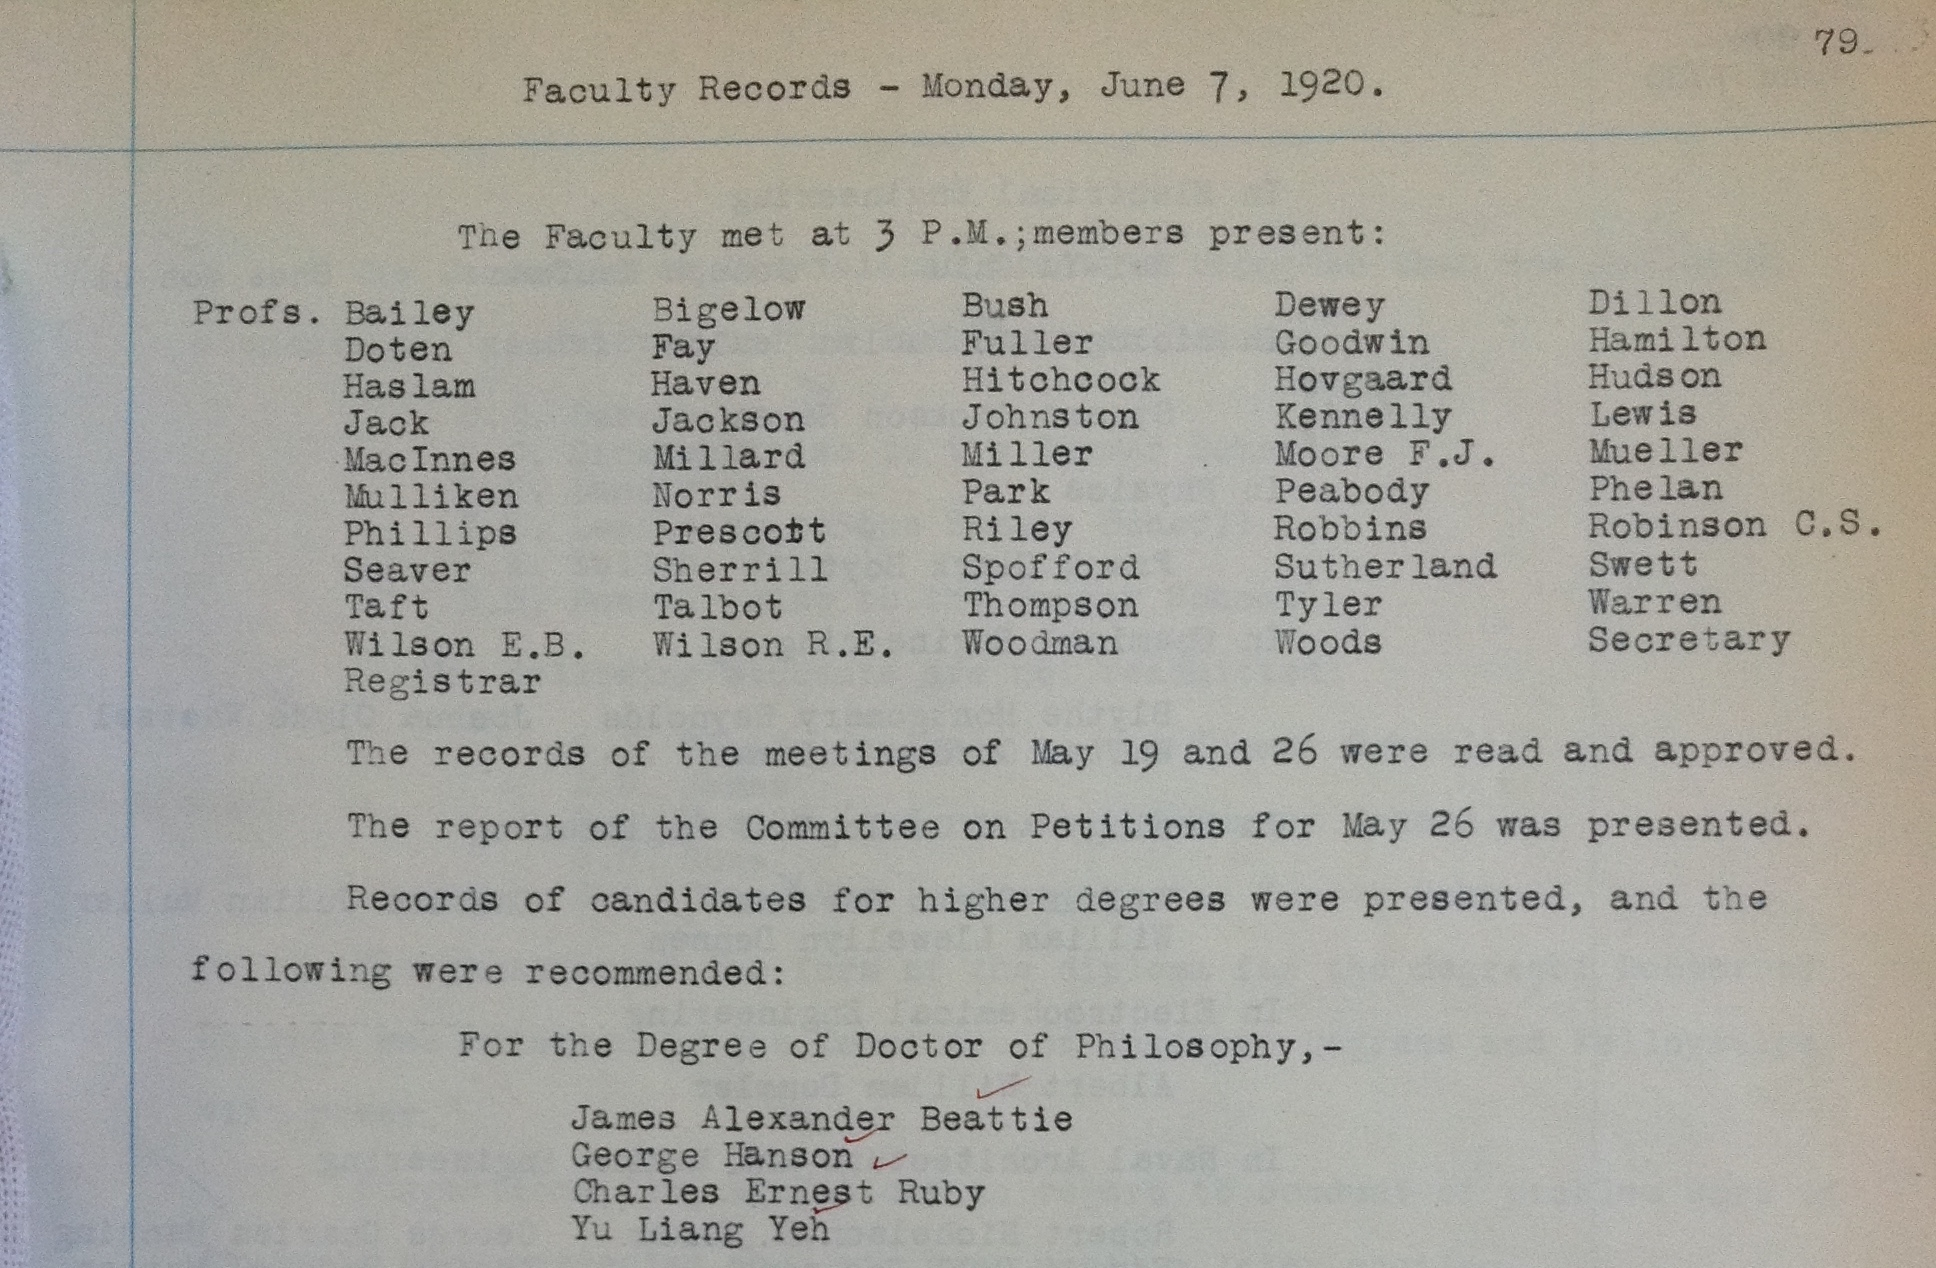 MIT Faculty Records, Monday, June 7, 1920, 79. Courtesy MIT Archives and Special Collections.